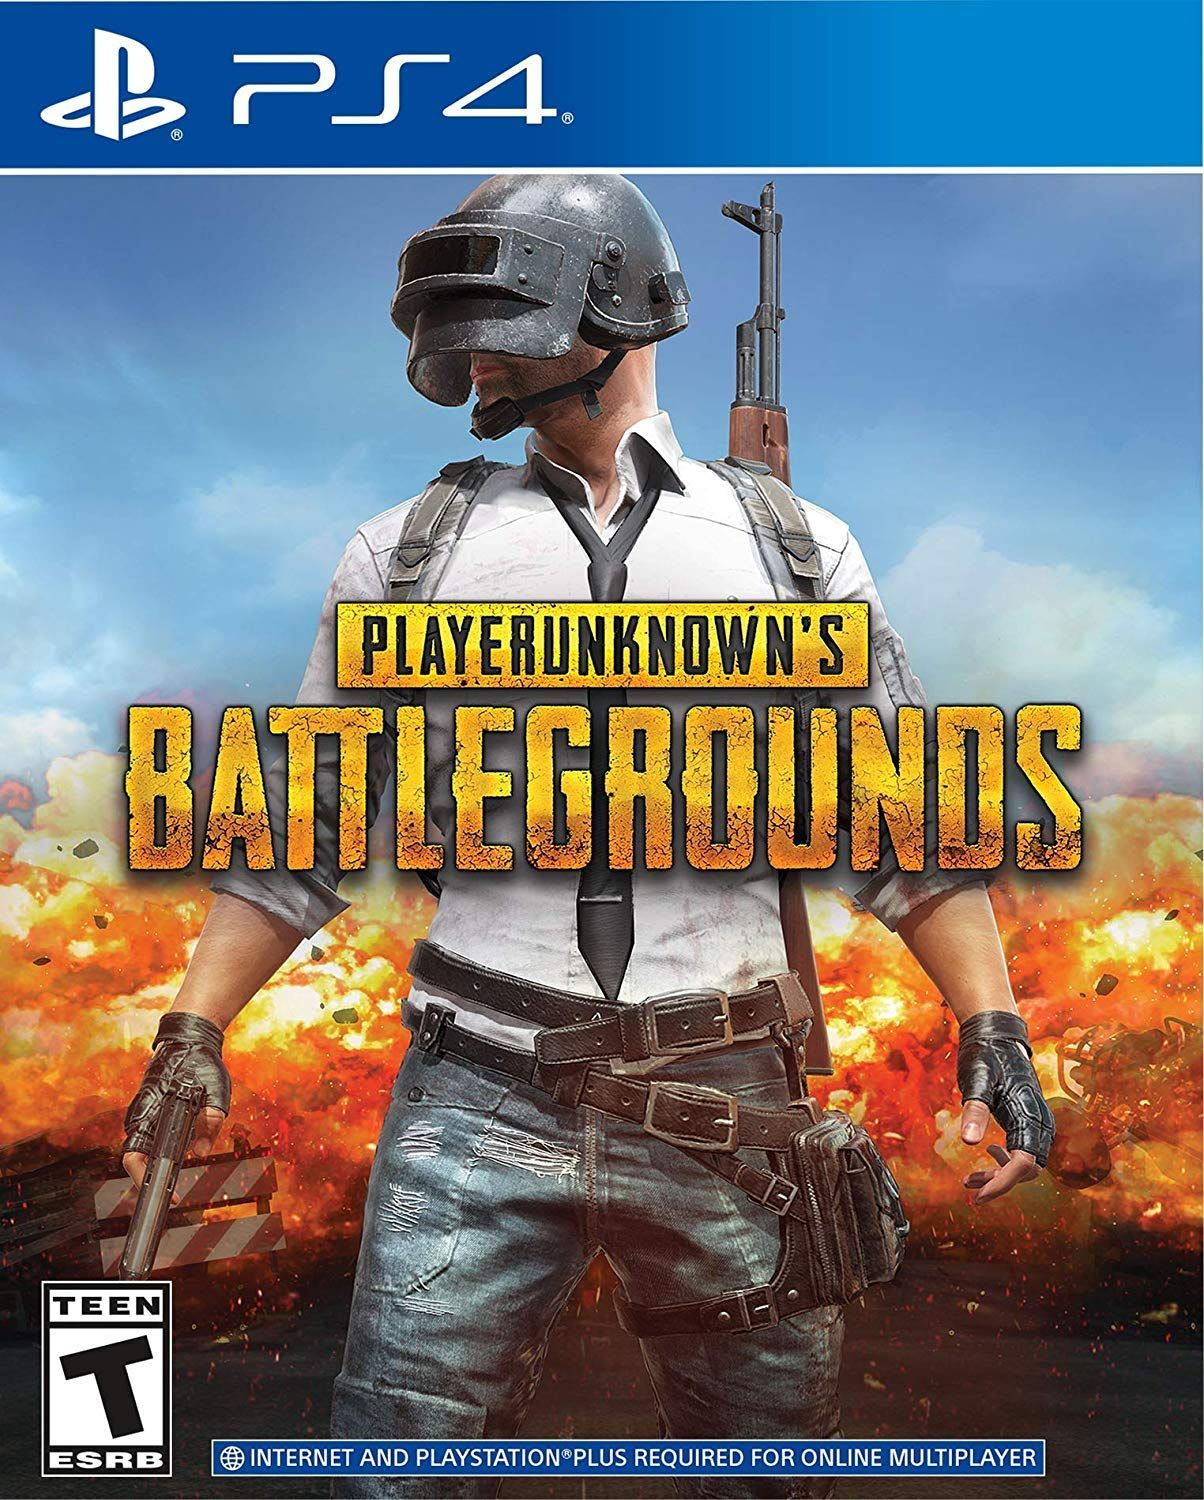 Pubg Mobile Hack Ps4 Download Games Online Games Game Cheats